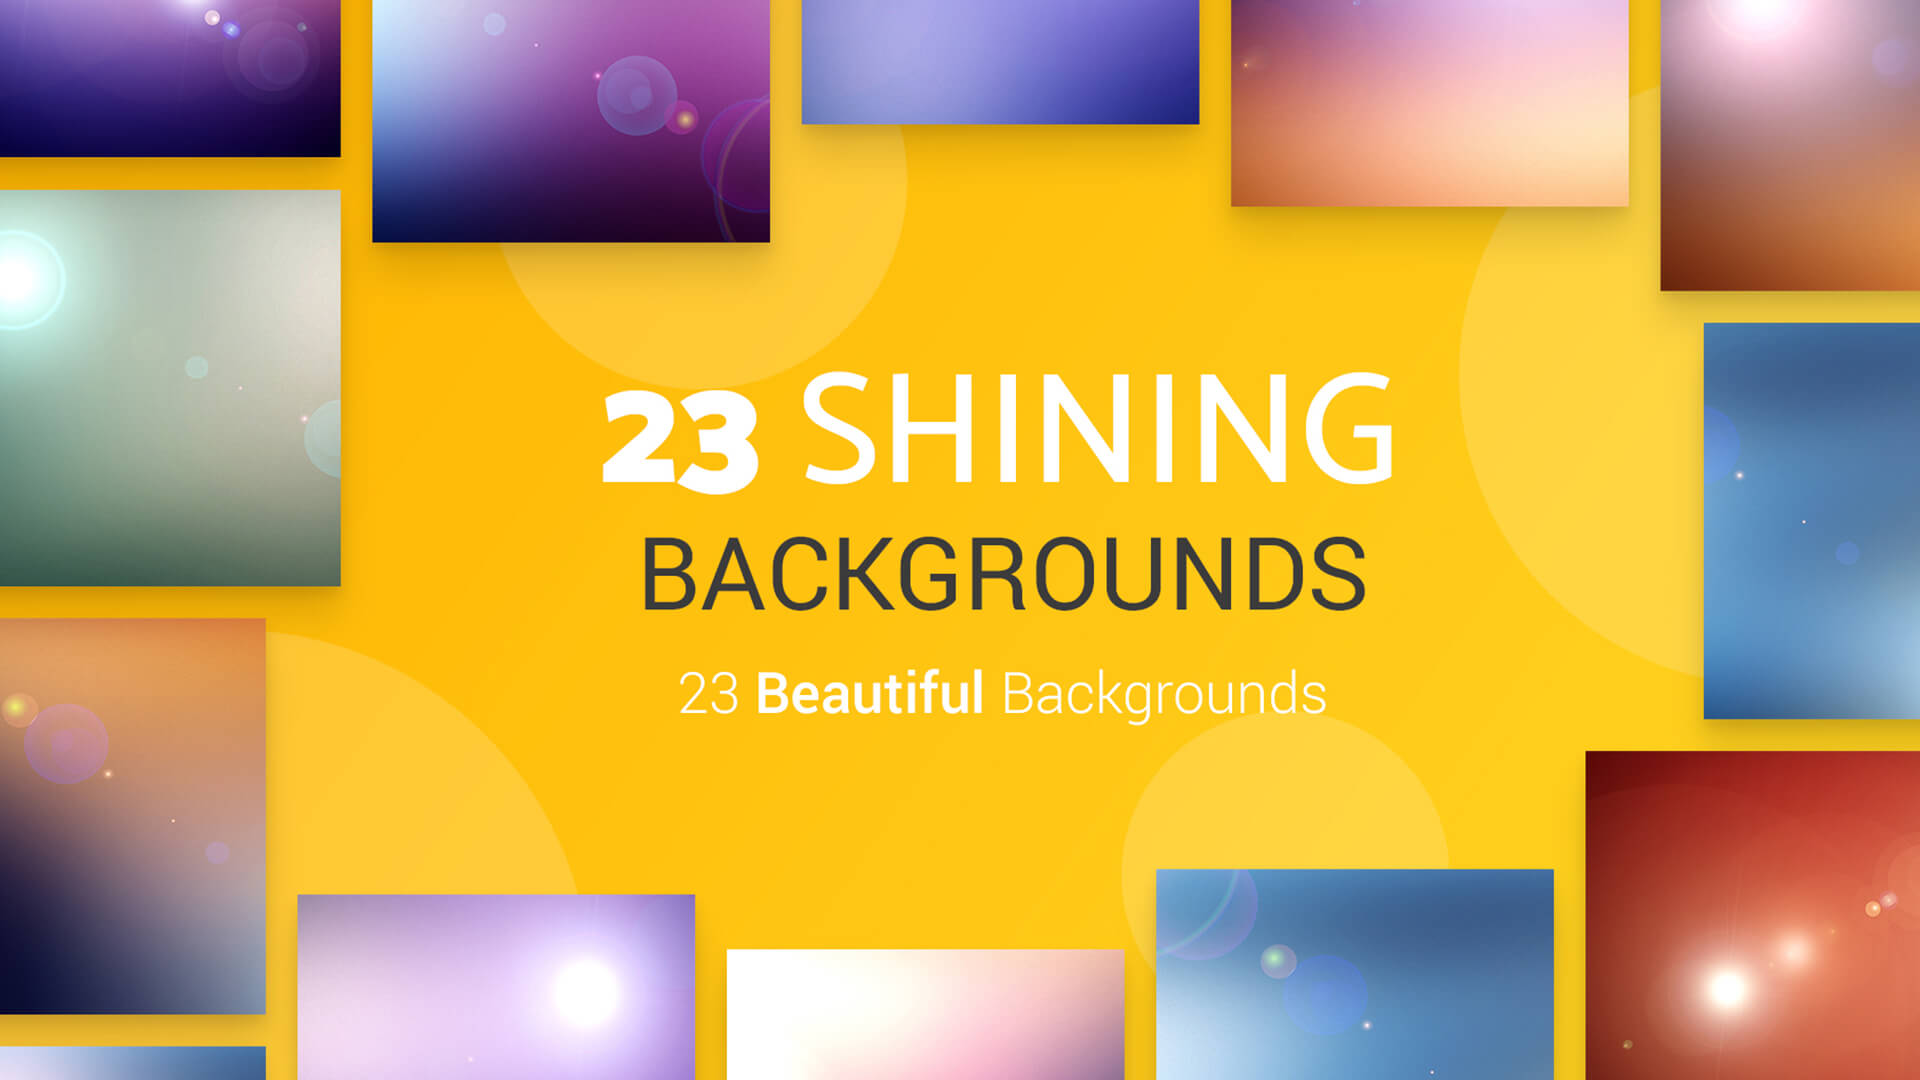 The Big Graphic Design Resources Bundle - 2 Shining BG